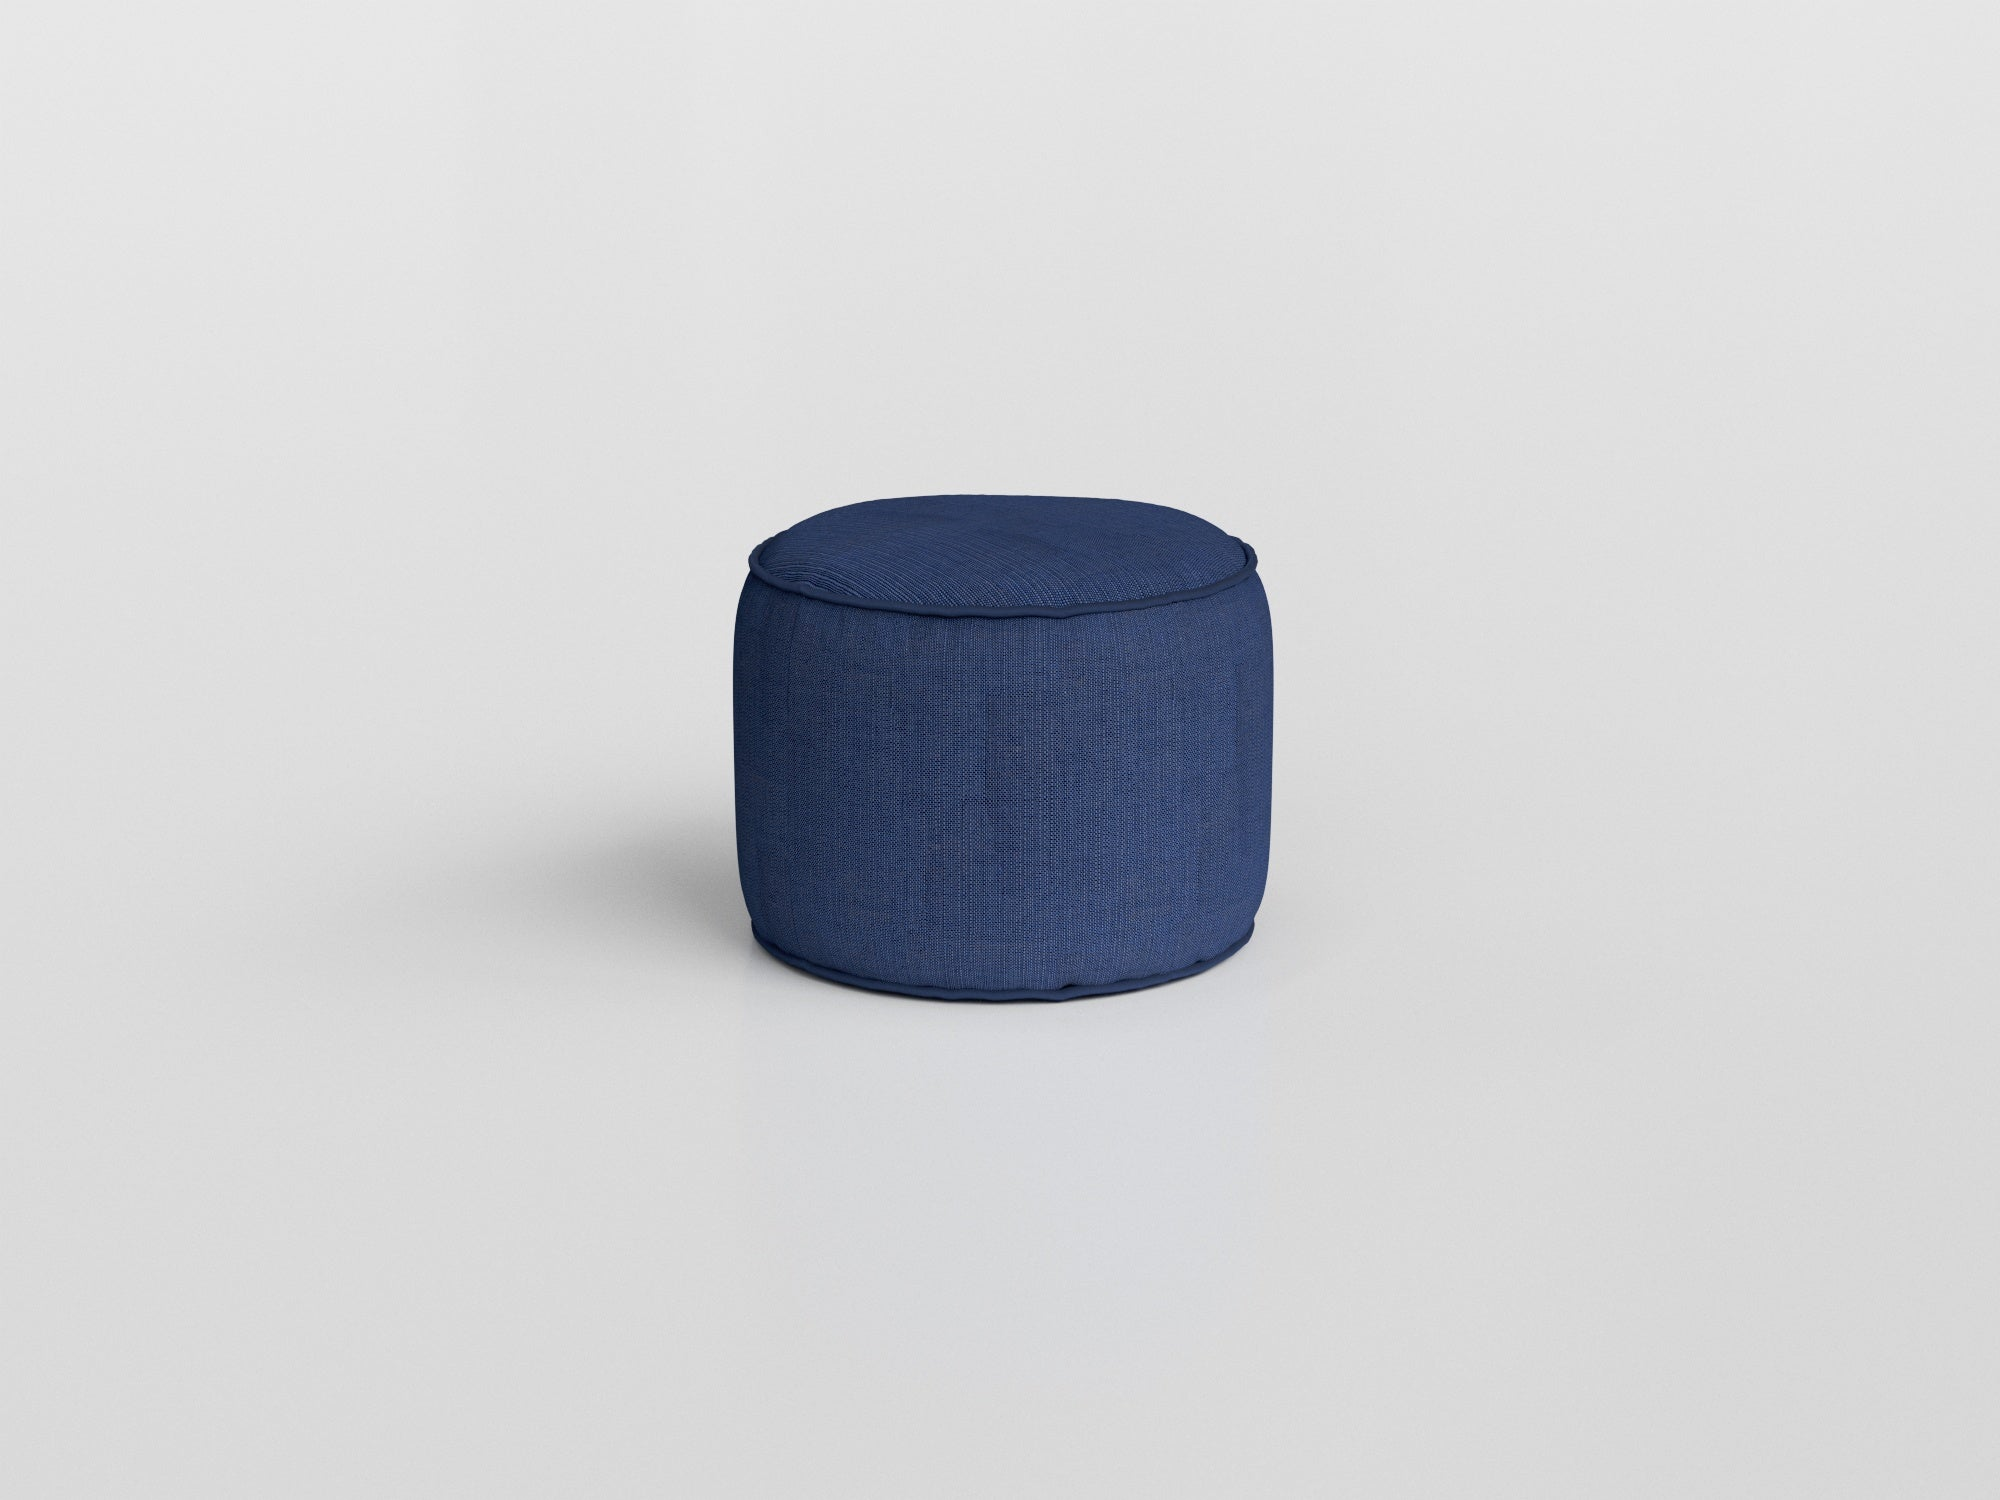 5750 - Soft Compact Ottoman Round